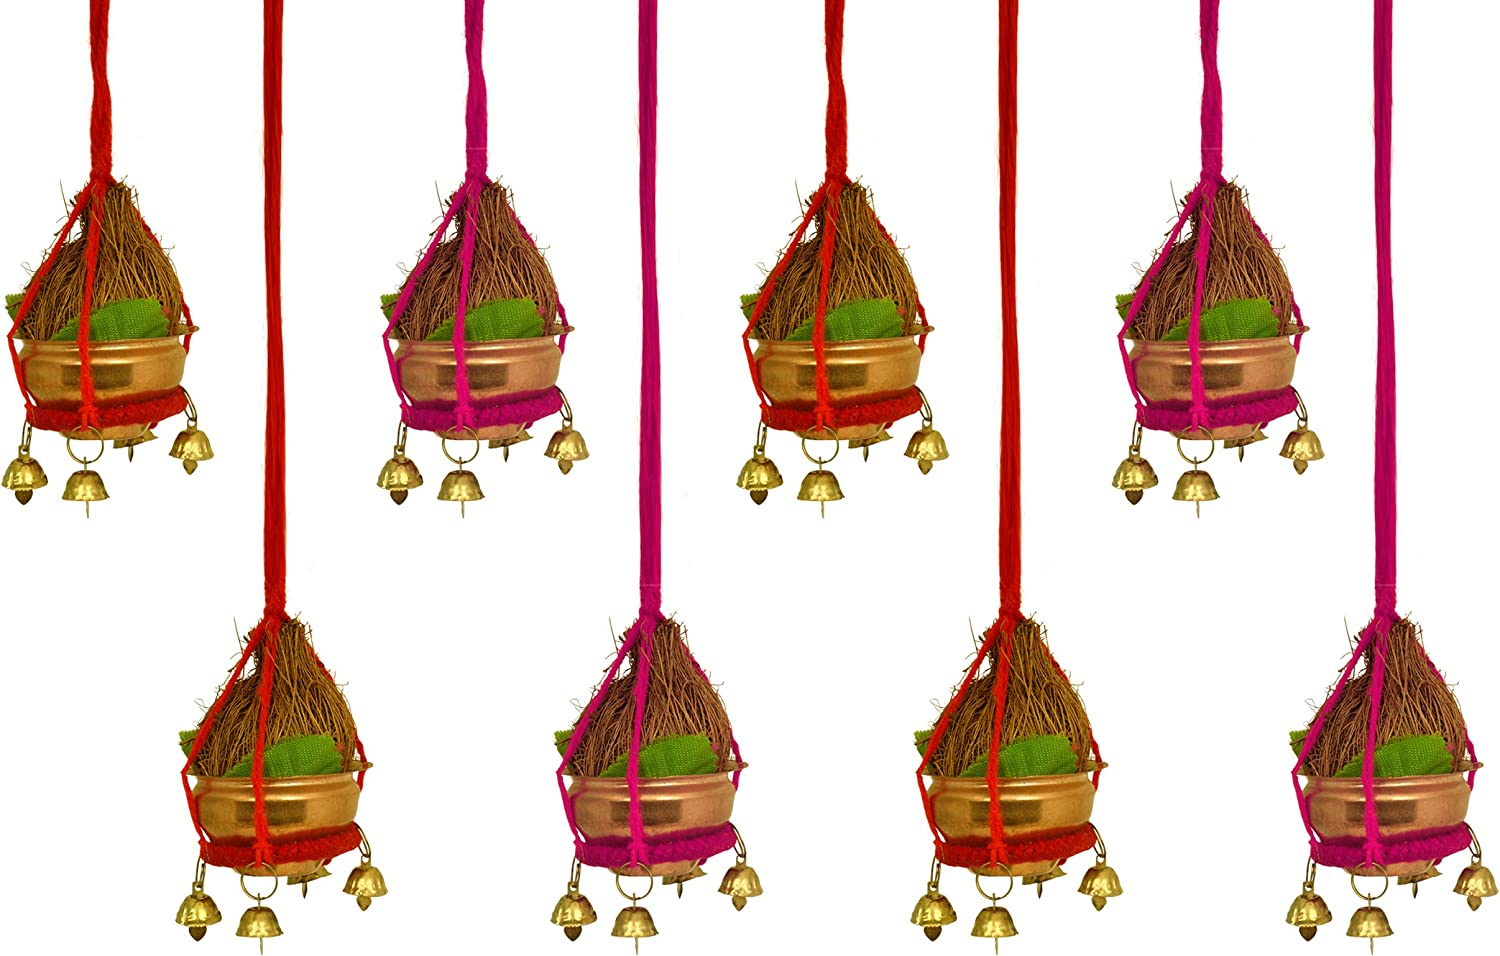 TIED RIBBONS Set of 8 Diwali Decorative Door and Wall Hanging for Home, Entrance Door, Mandir, Puja Room and Diwali Decoration Item